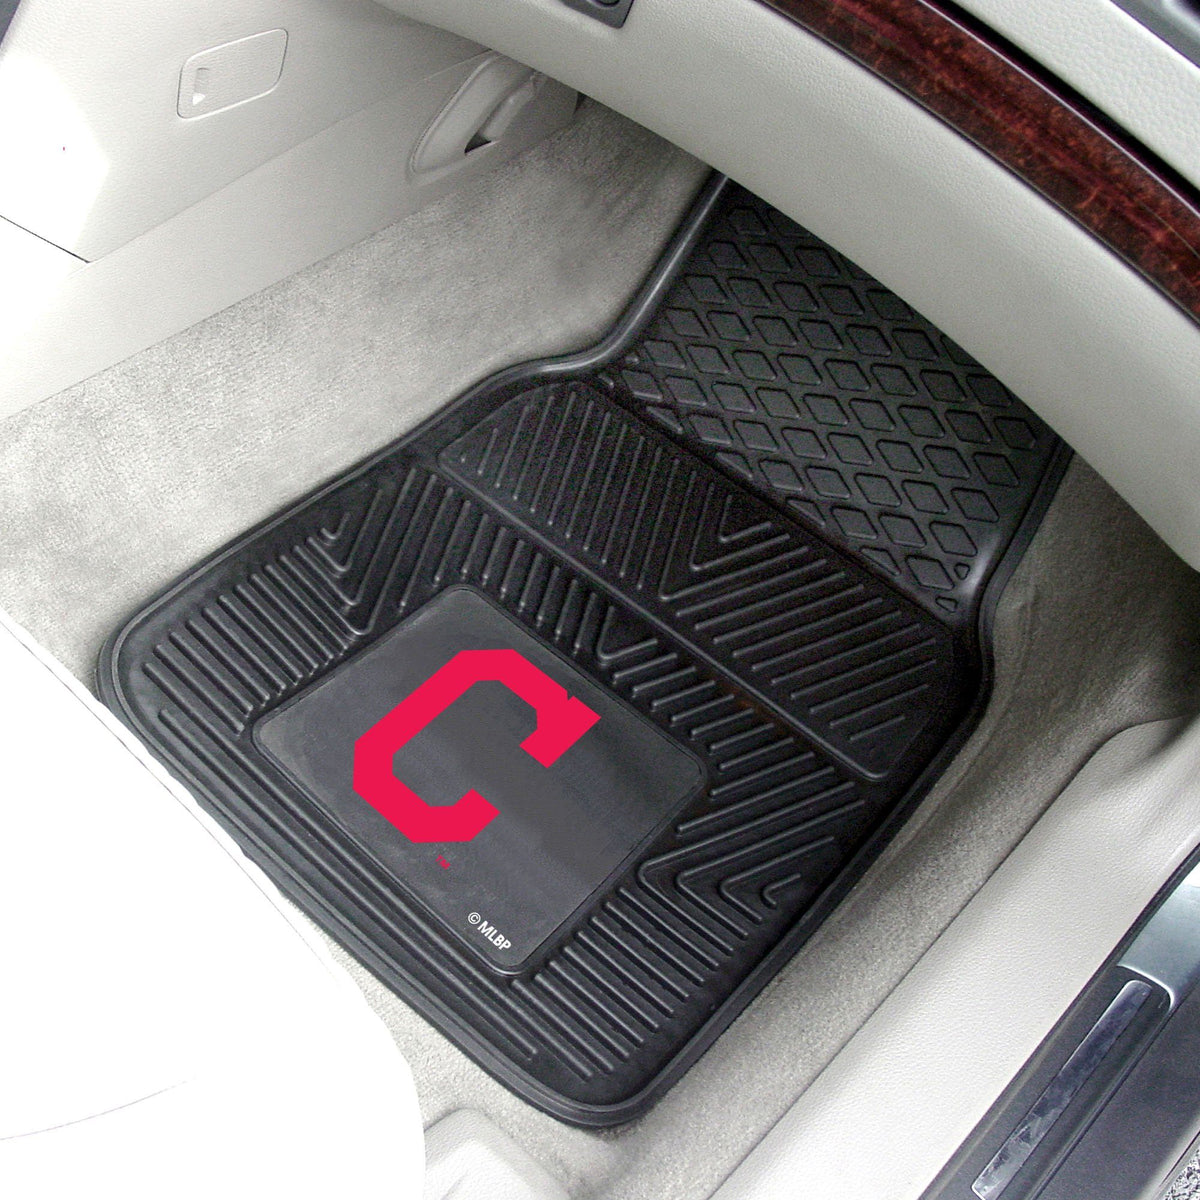 MLB - Vinyl Car Mat, 2-Piece Set MLB Mats, Front Car Mats, 2-pc Vinyl Car Mat Set, MLB, Auto Fan Mats Cleveland Indians